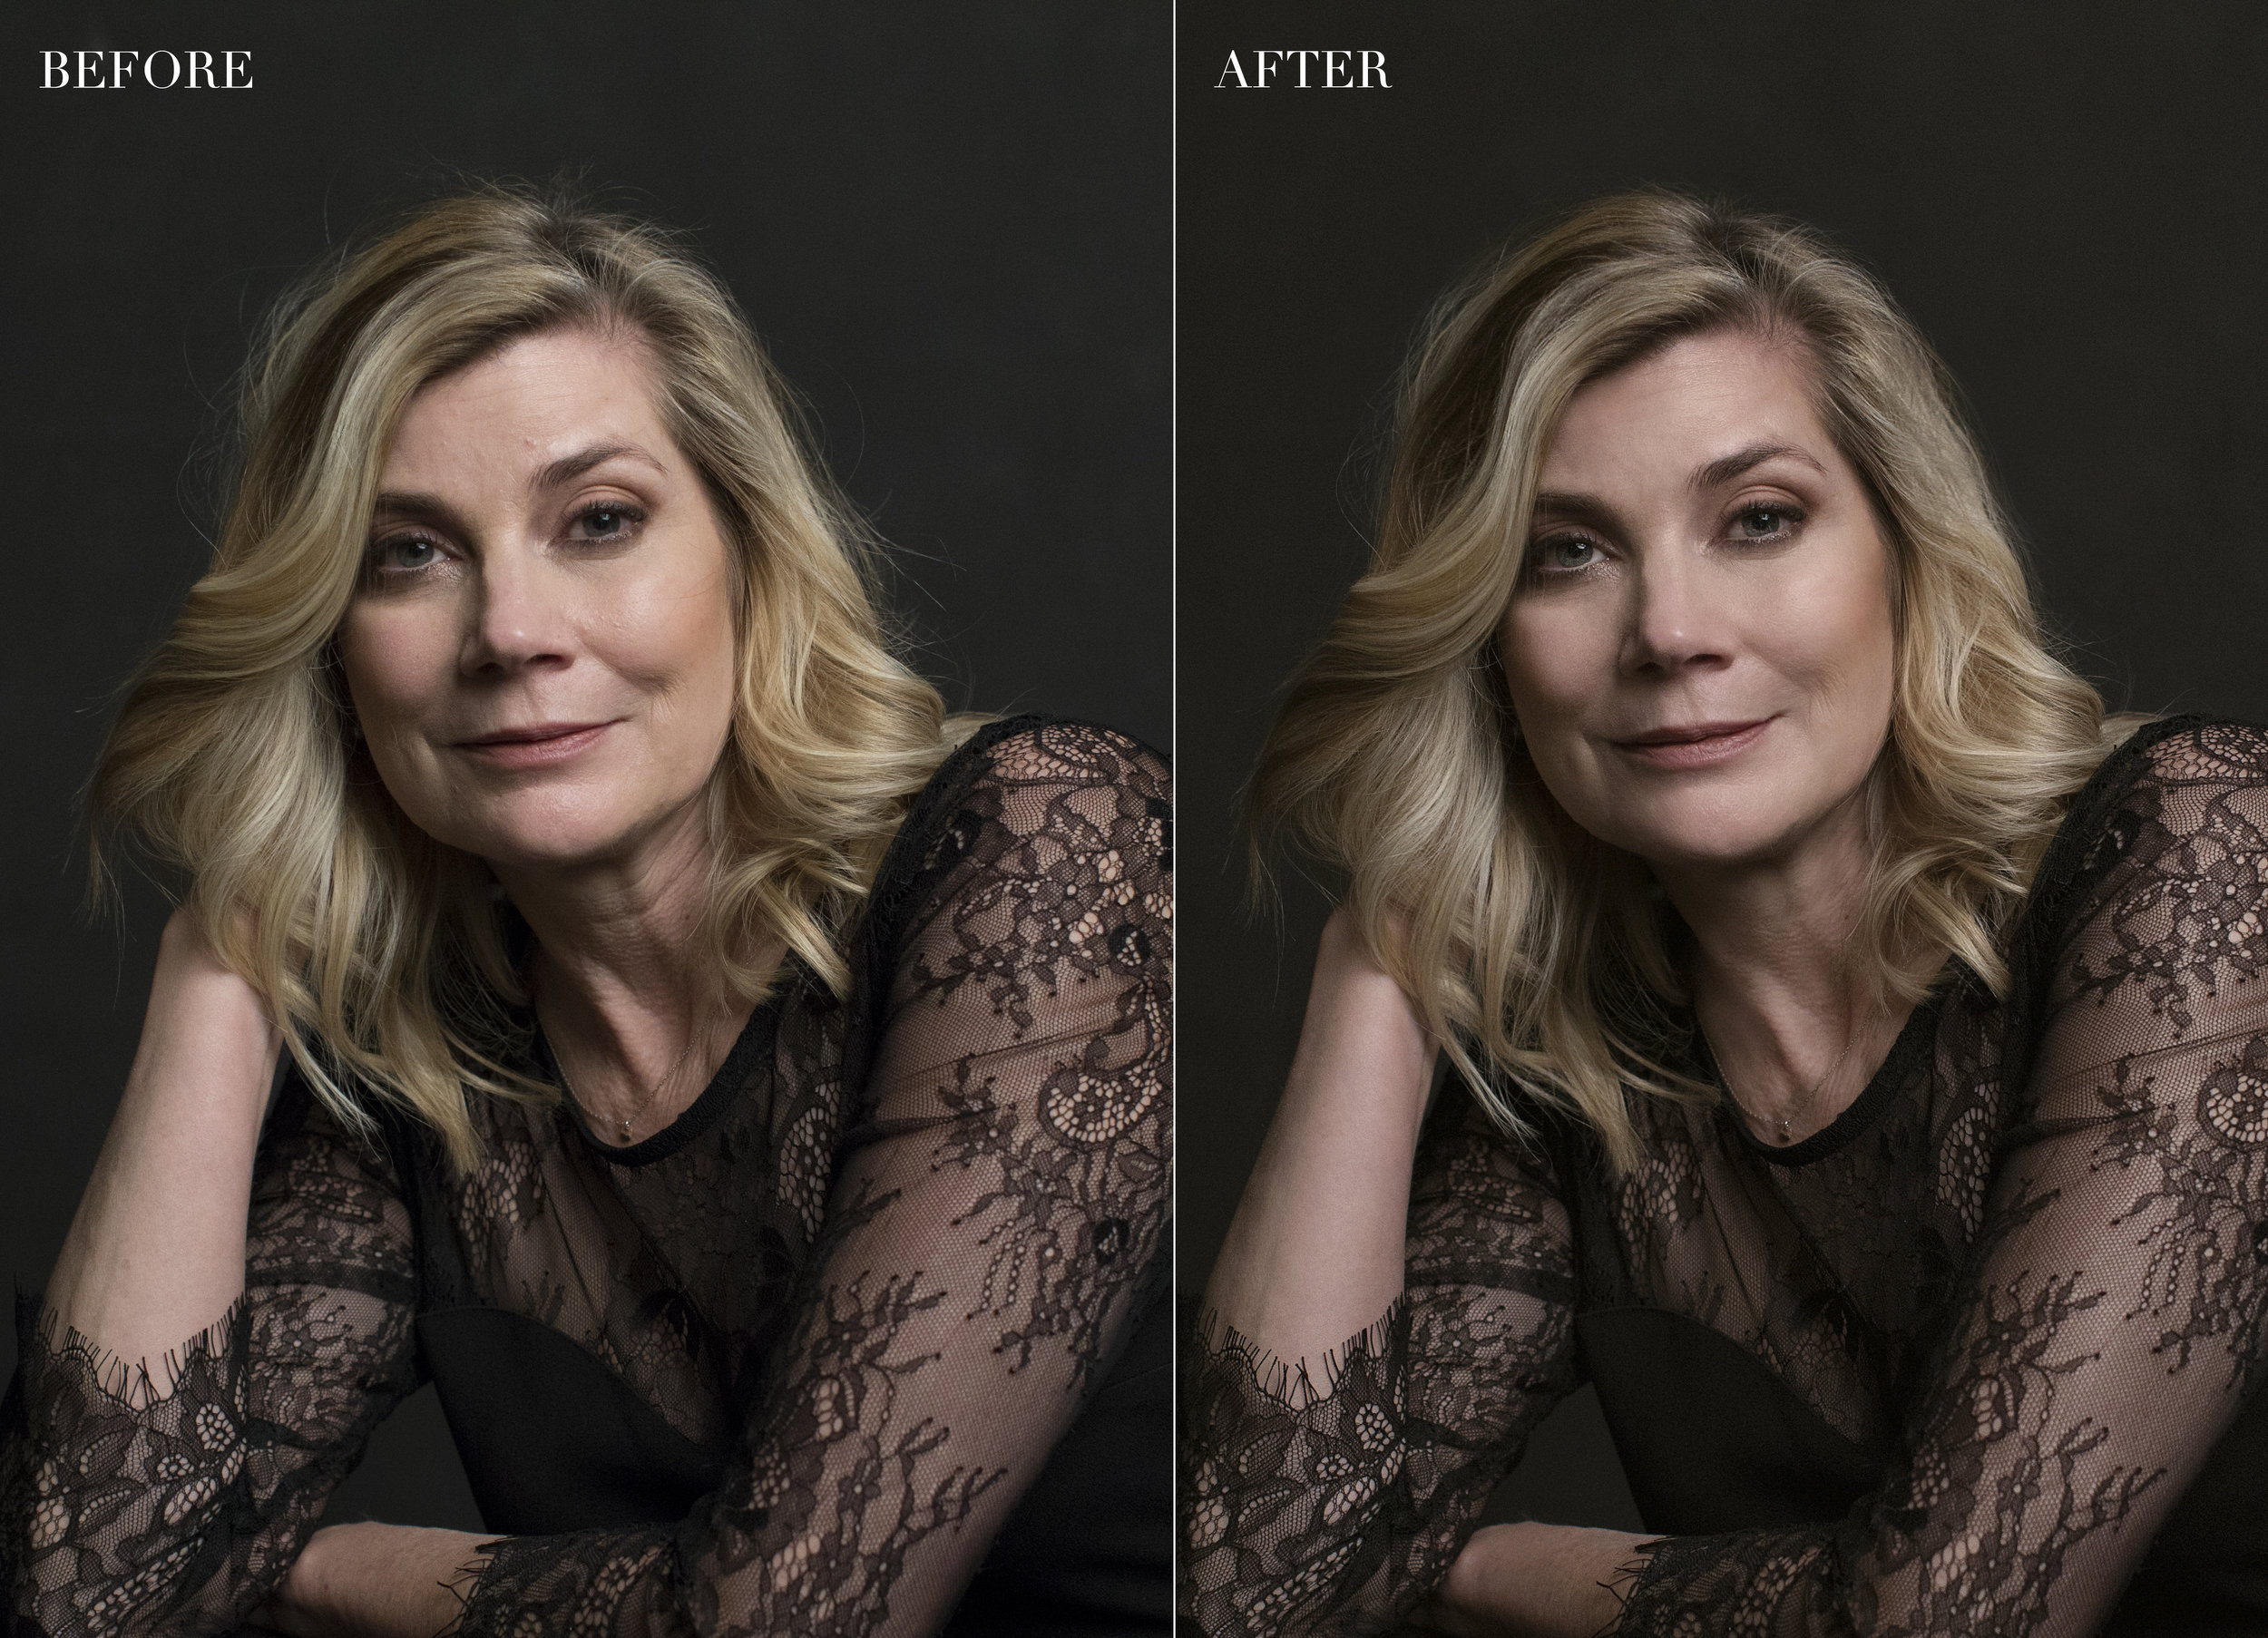 retouching-before-after-tiphani-2.jpg